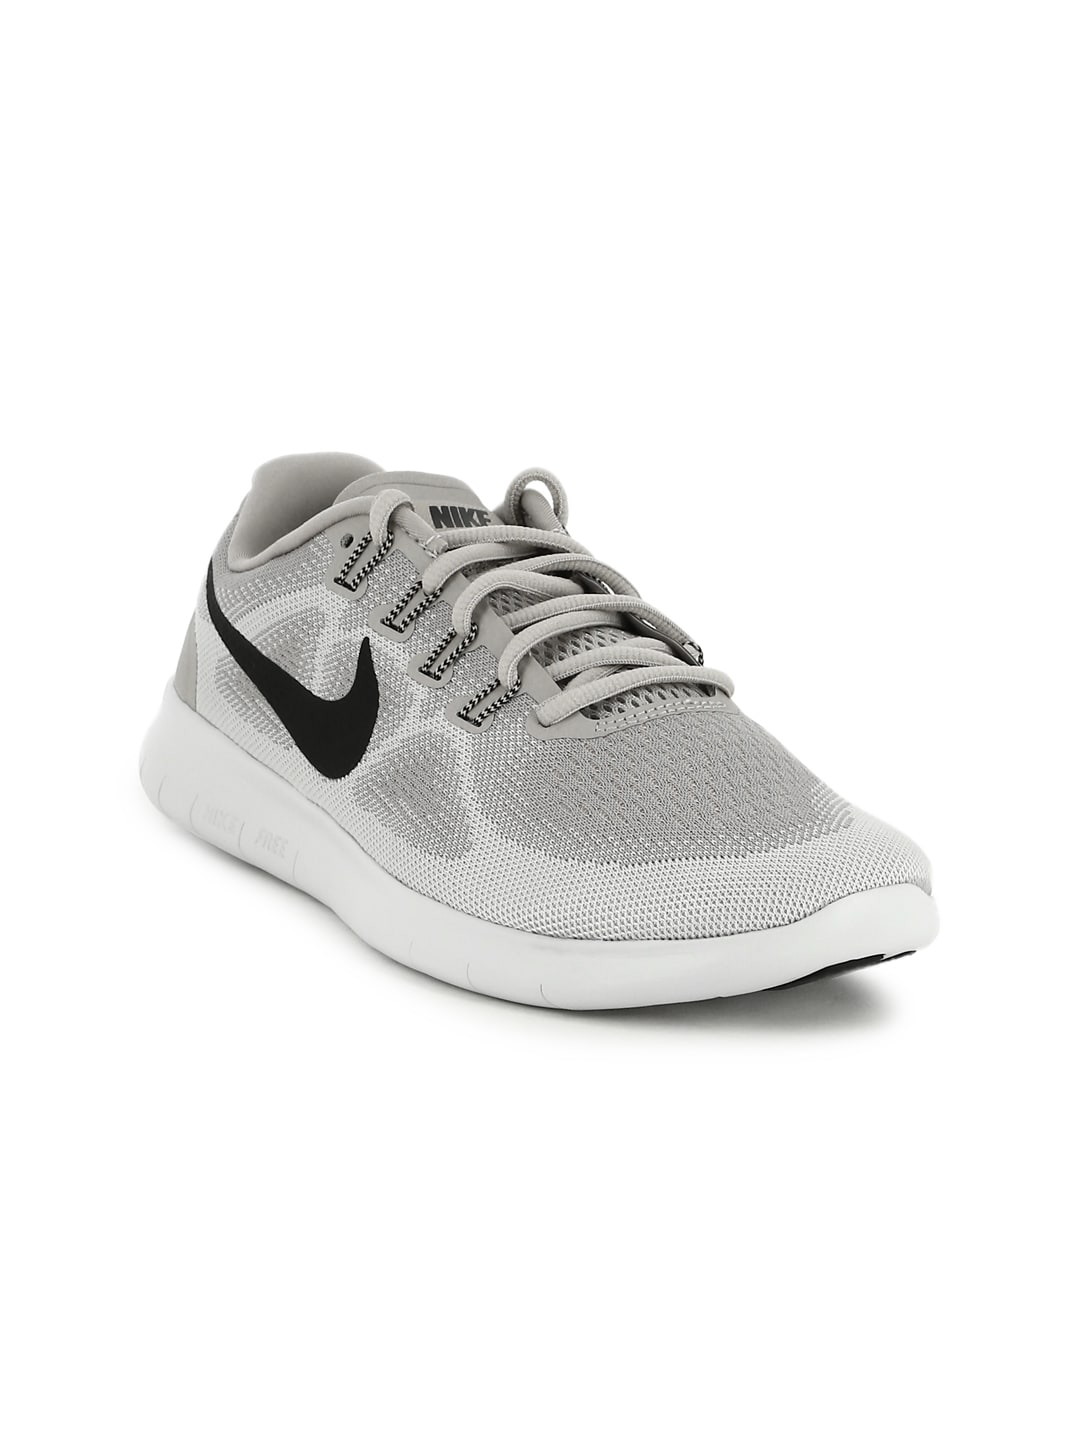 d980a837be56 Nike Free - Buy Nike Free online in India